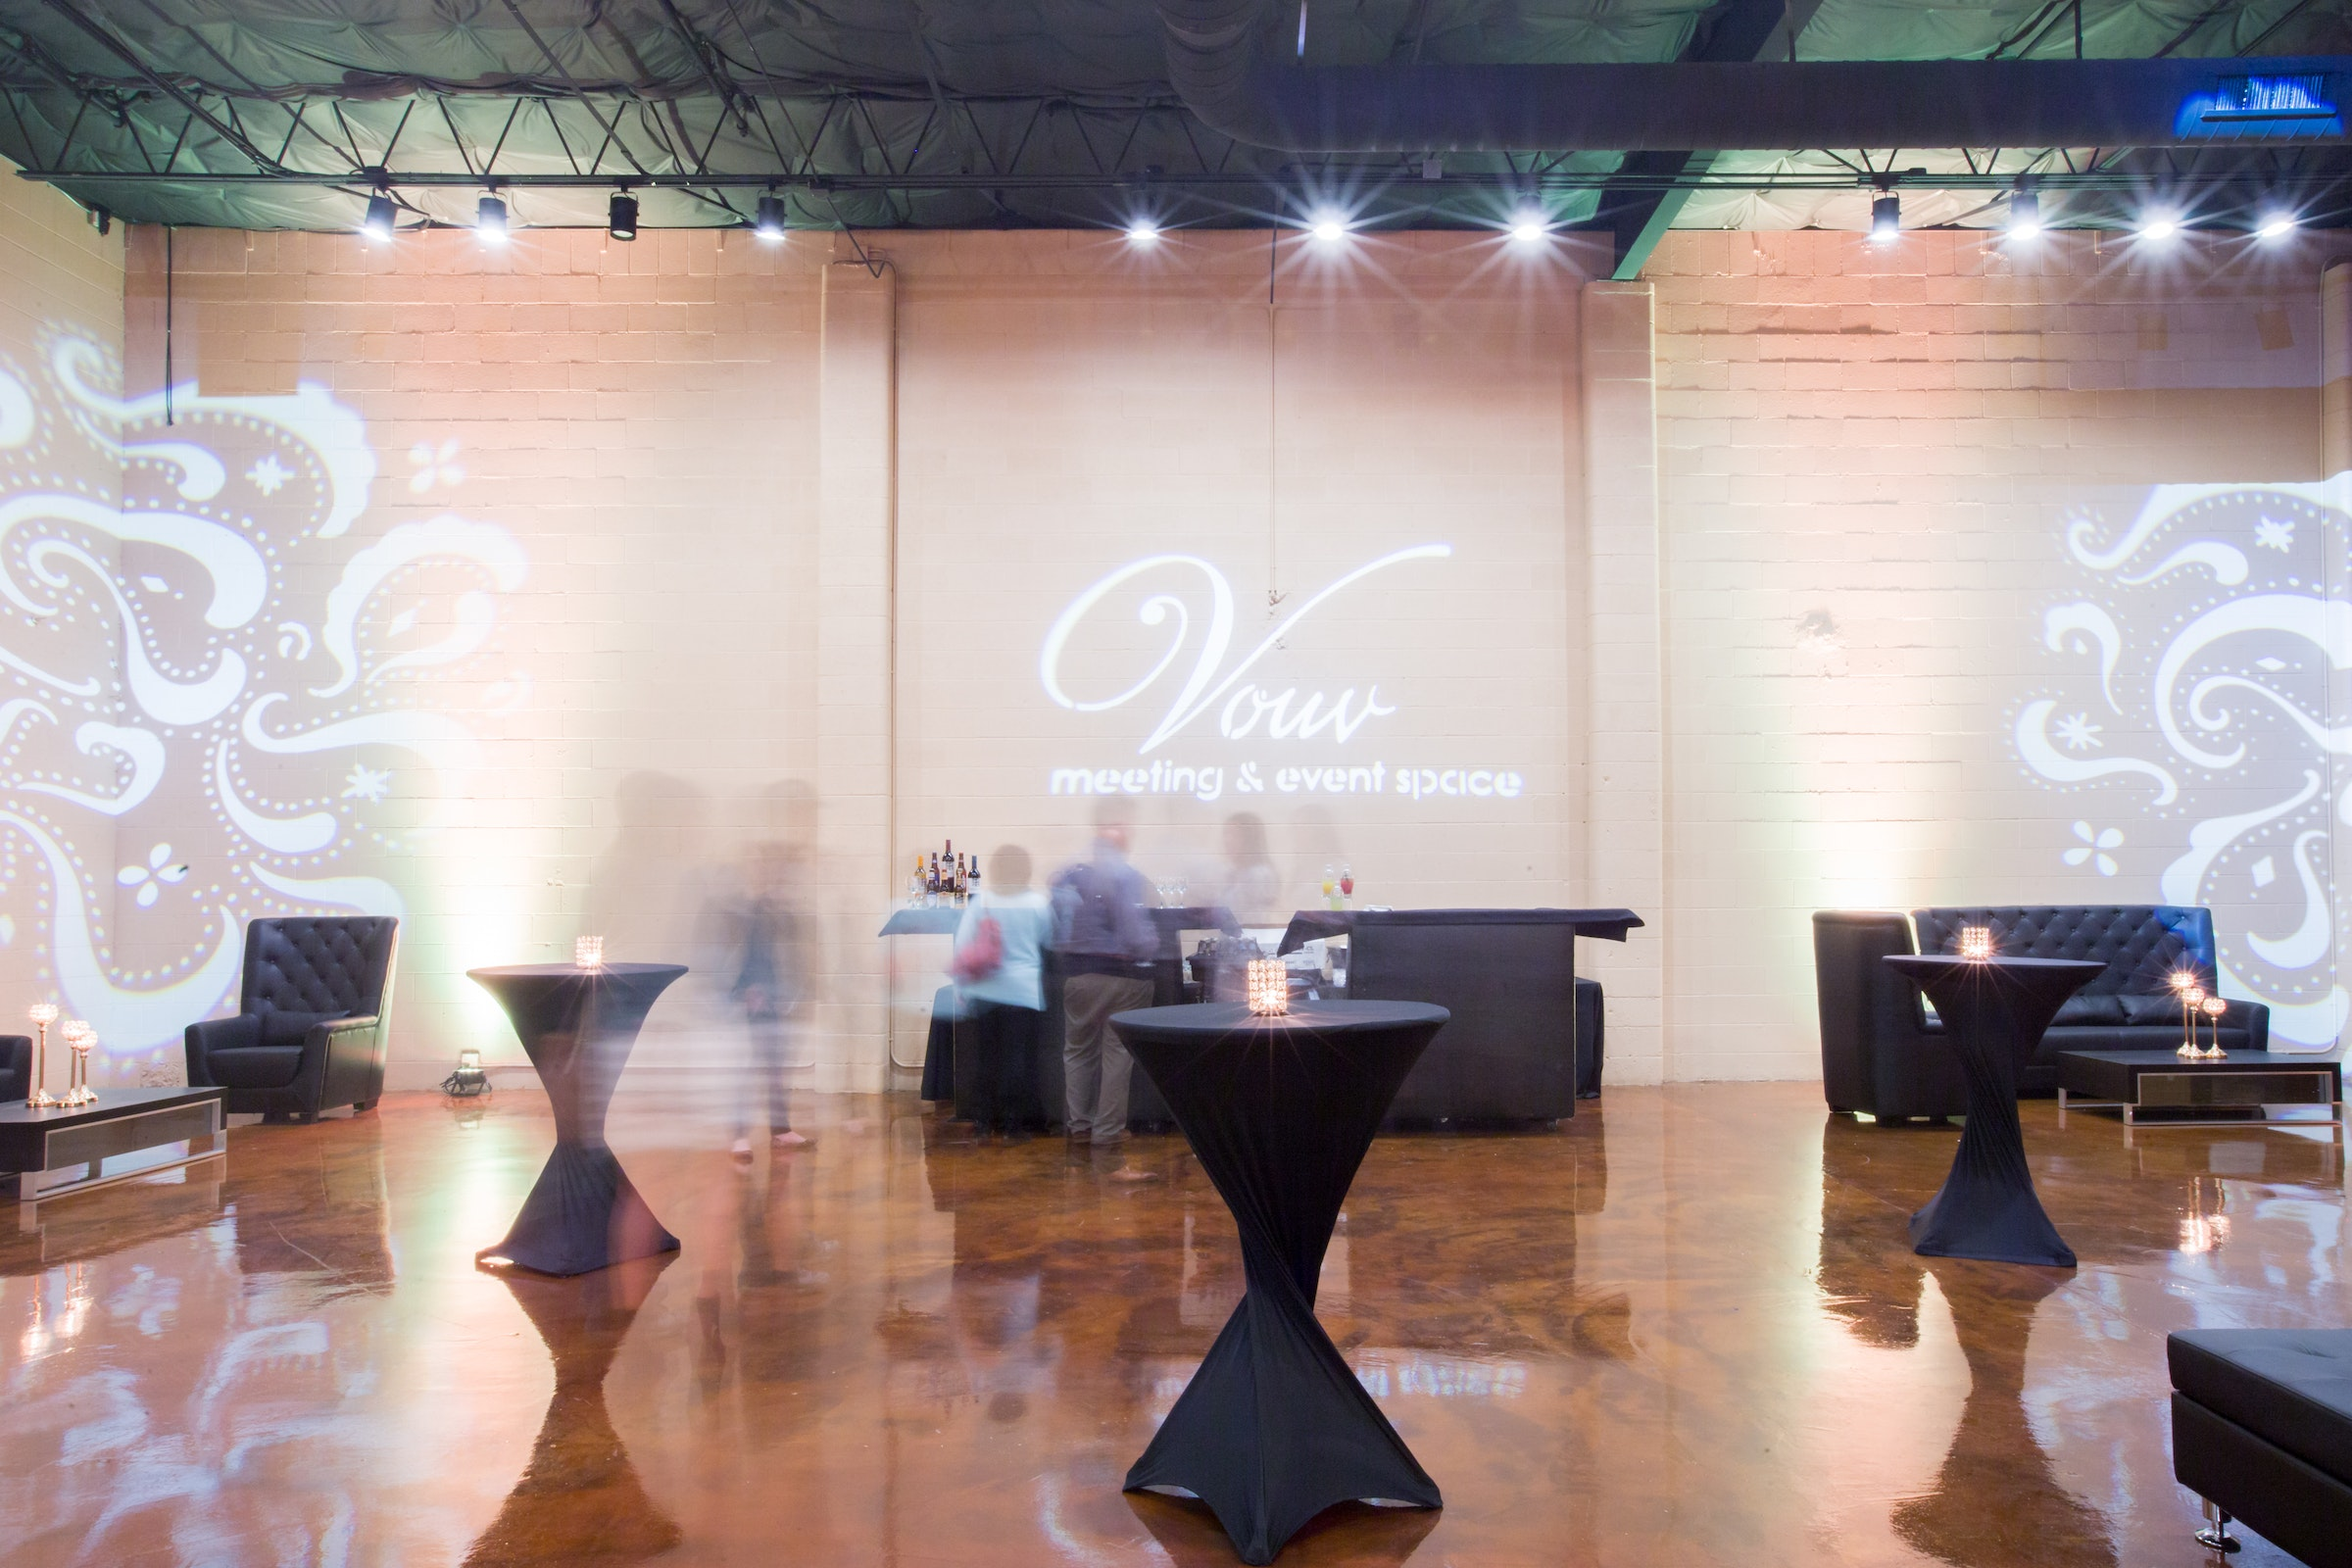 Vouv Meeting & Event Space in Beyond Dallas